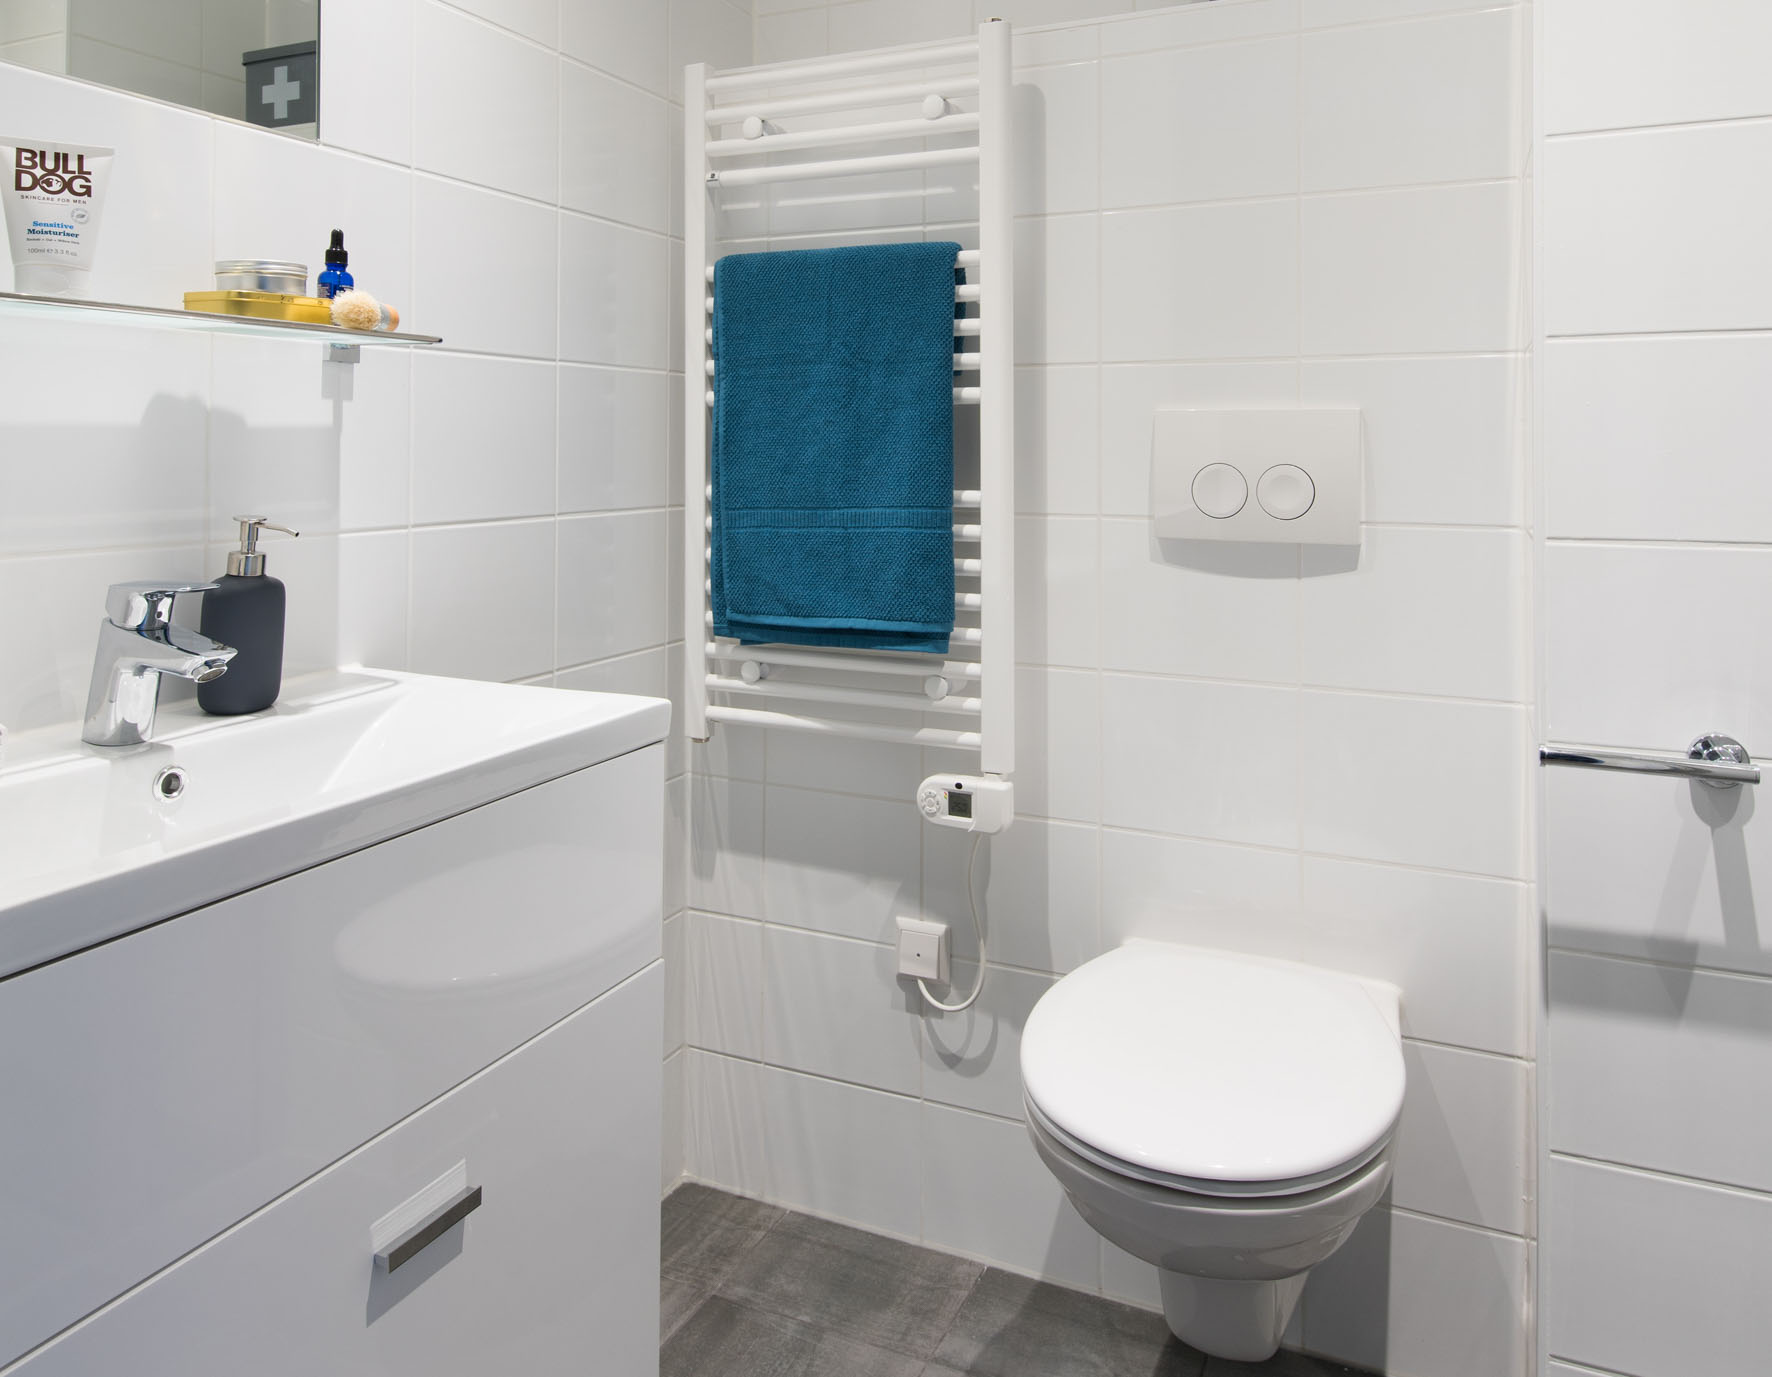 1-bedroom unfurnished apartment in OurDomain Amsterdam Diemen -bathroom